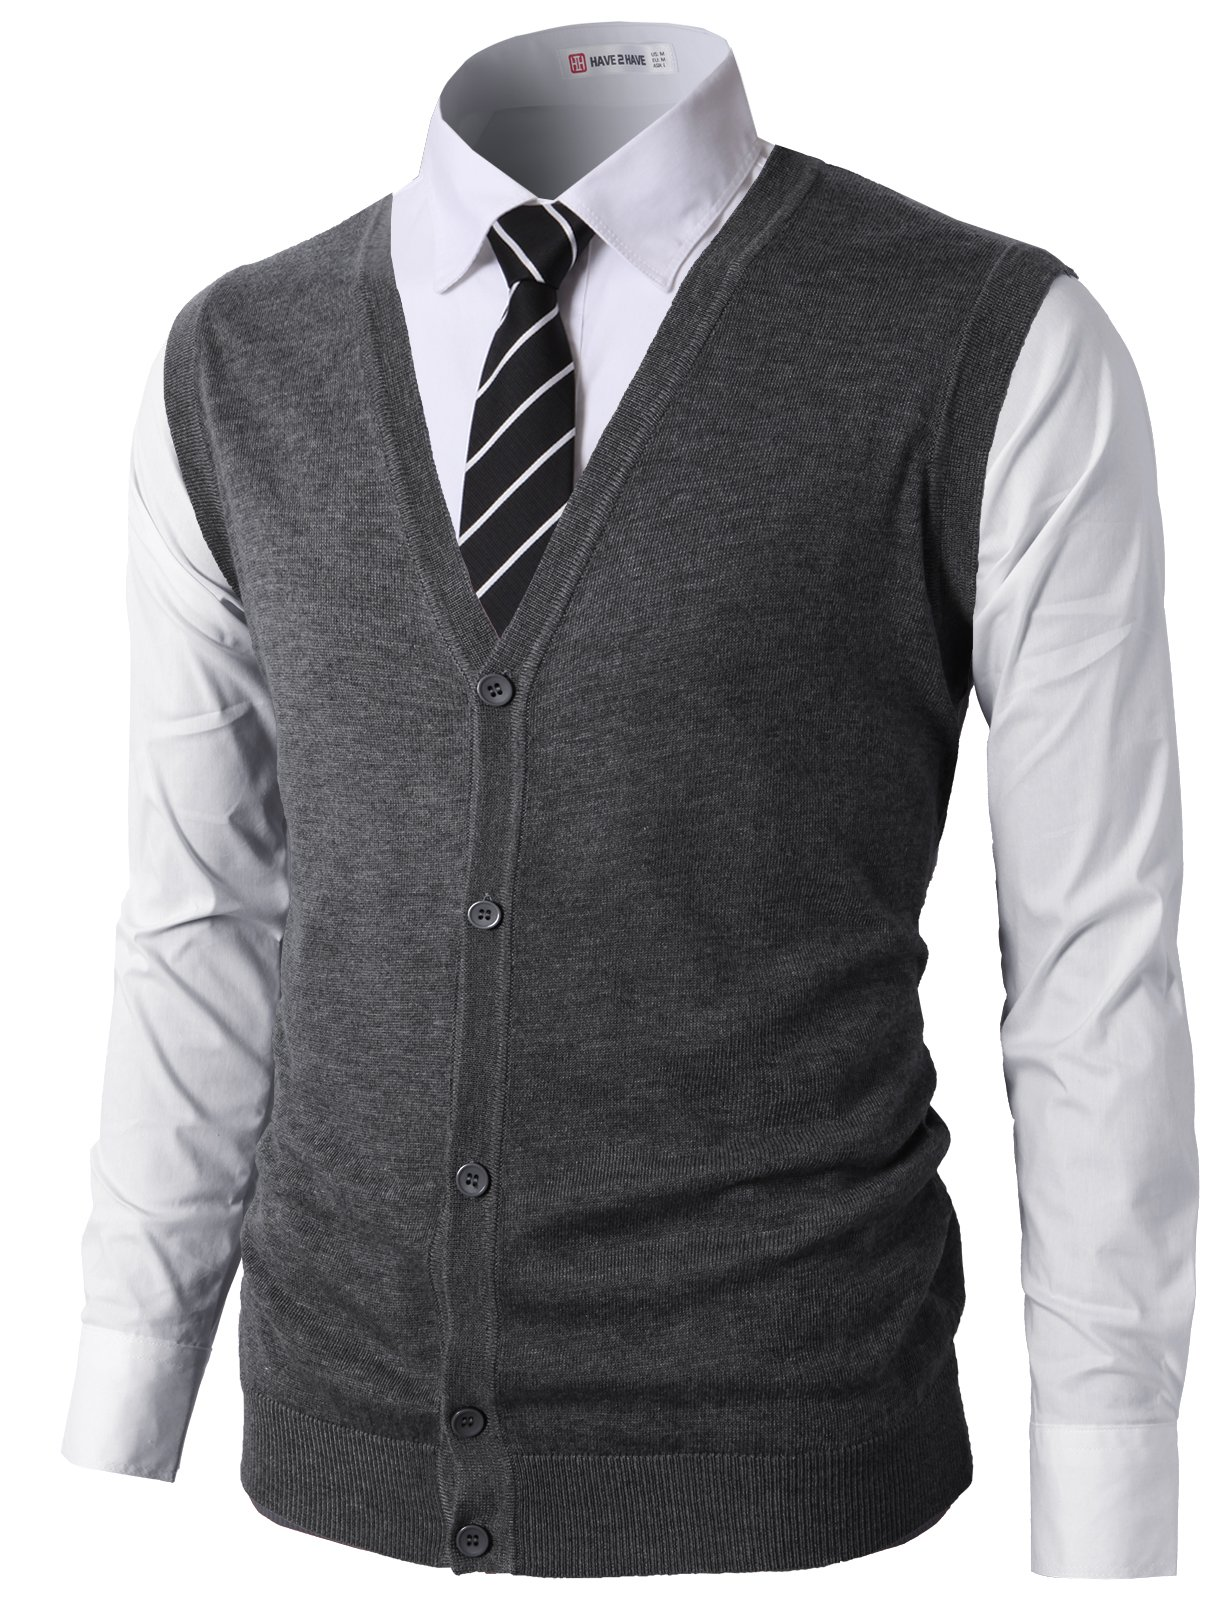 H2H Mens Casual Fitted Knitted V-Neck Button-Down Vests Charcoal US M/Asia L (CMOV038) by H2H